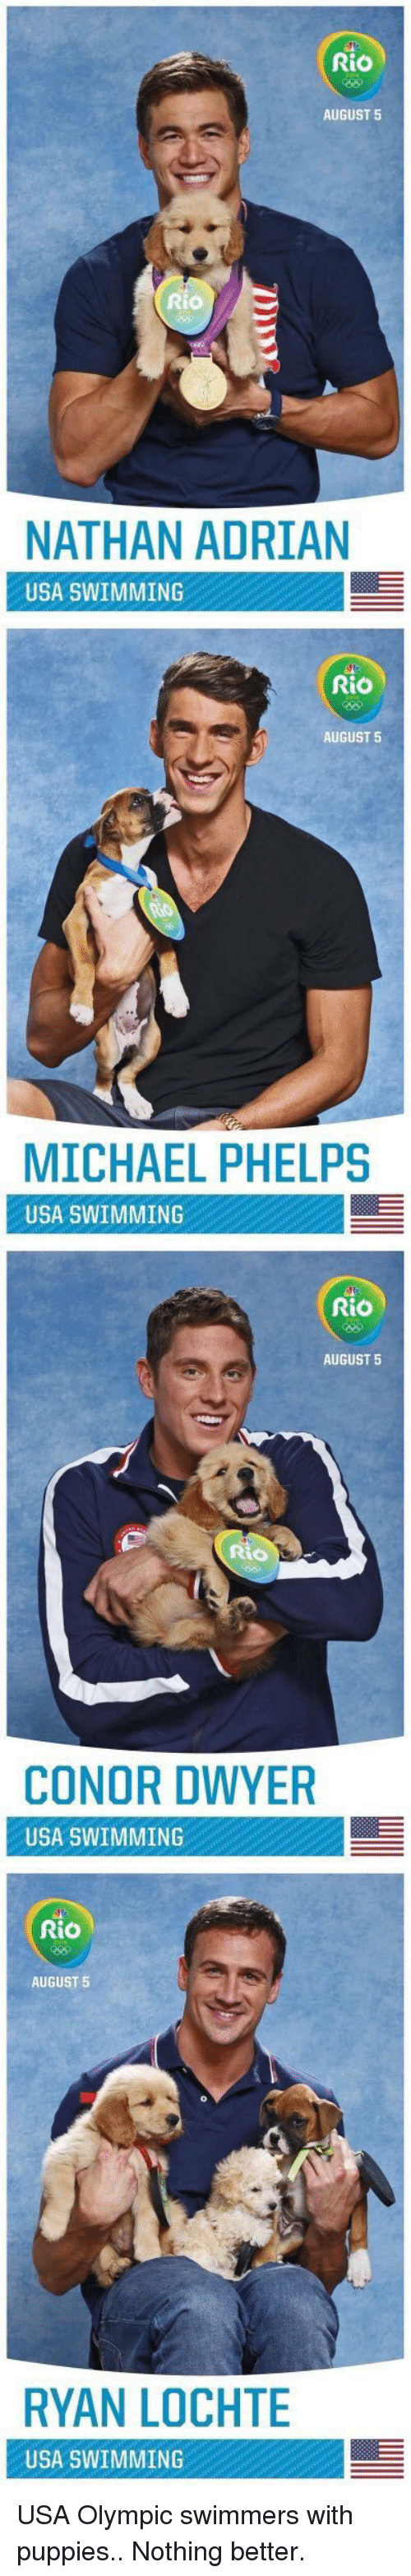 Puppies, Michael, and Michael Phelps: Rio  AUGUST 5  Rio  NATHAN ADRIAN  USA SWIMMING   Rio  AUGUST 5  MICHAEL PHELPS  USA SWIMMING   Rio  AUGUST 5  CONOR DWYER  USA SWIMMING   Rio  AUGUST 5  RYAN LOCHTE  USA SWIMMING USA Olympic swimmers with puppies.. Nothing better.